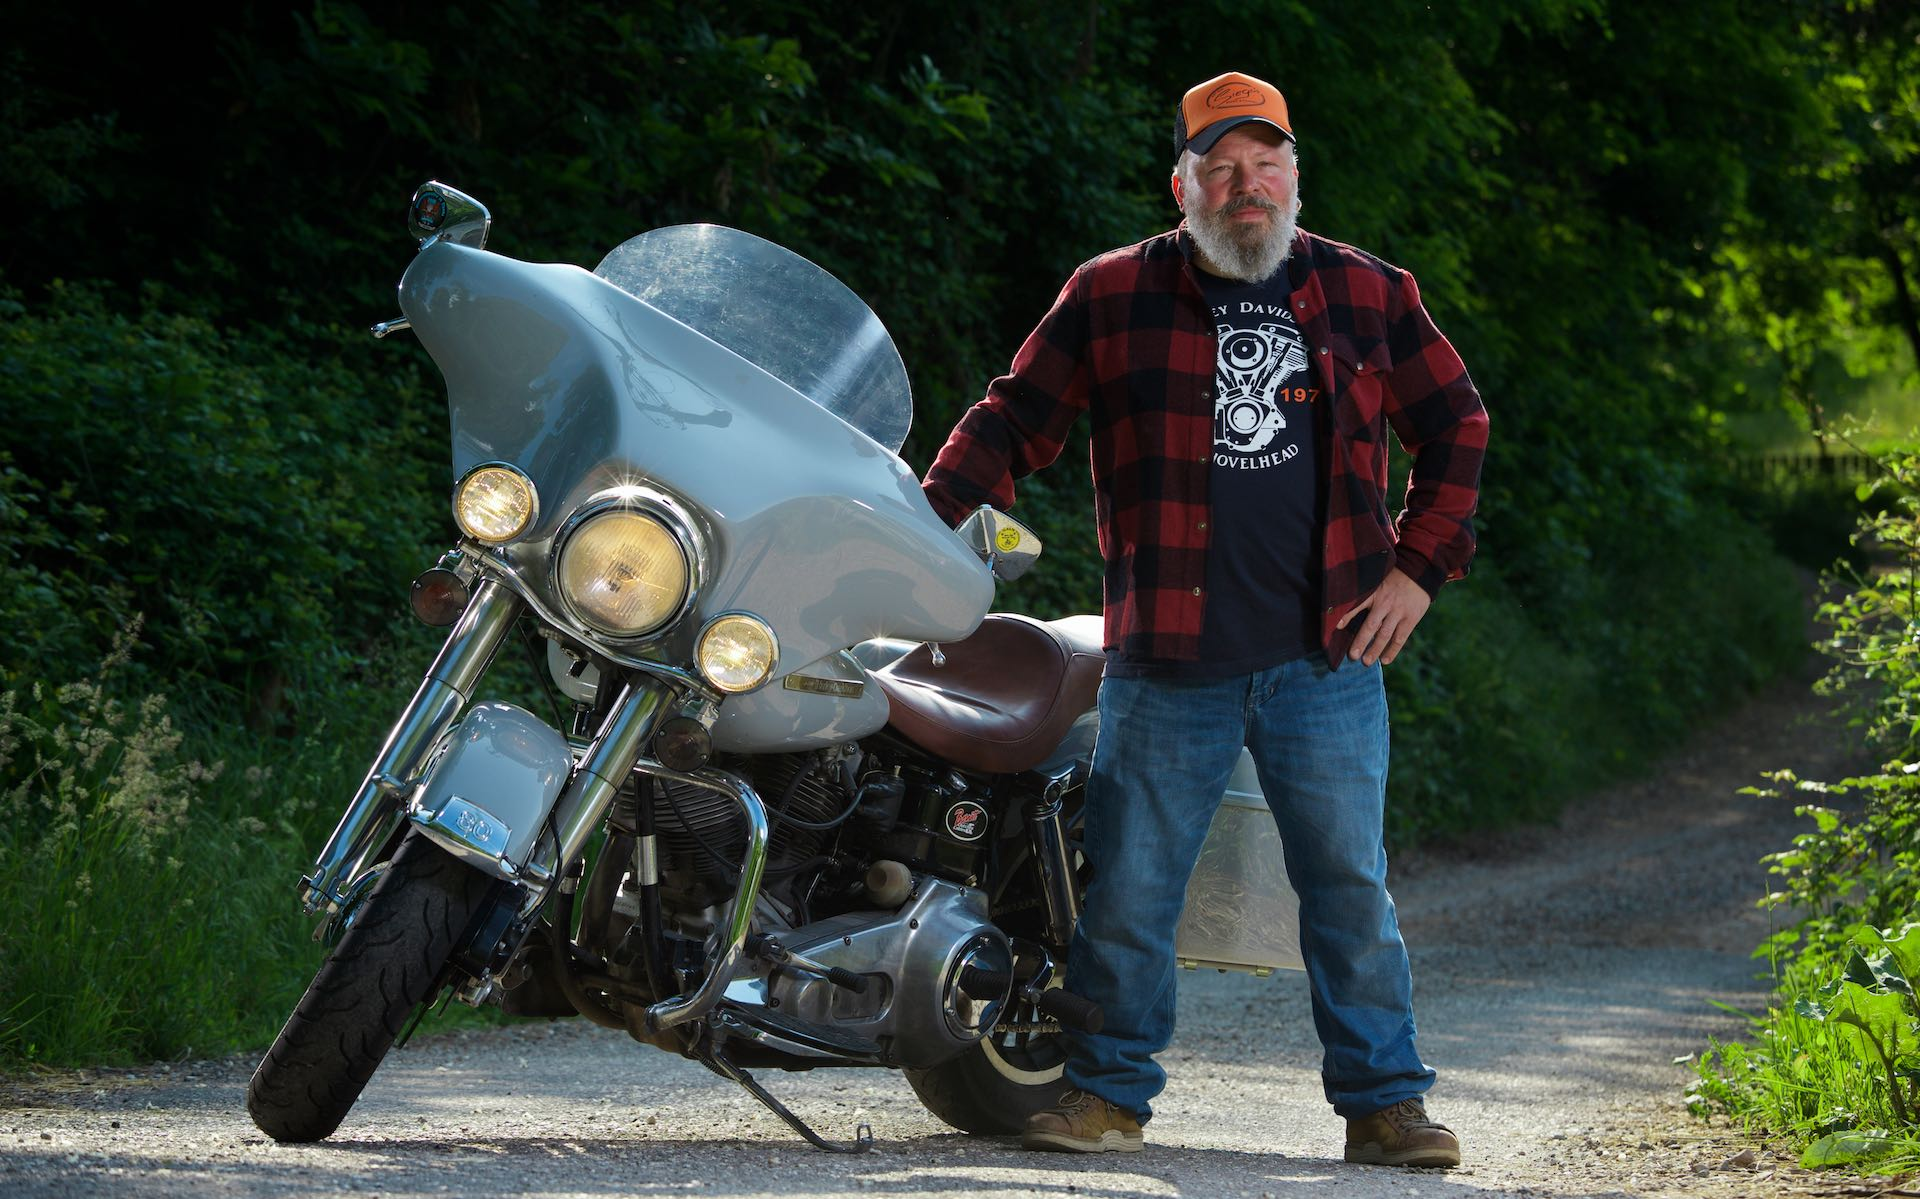 Christian Andergassen and his Harley Davidson.